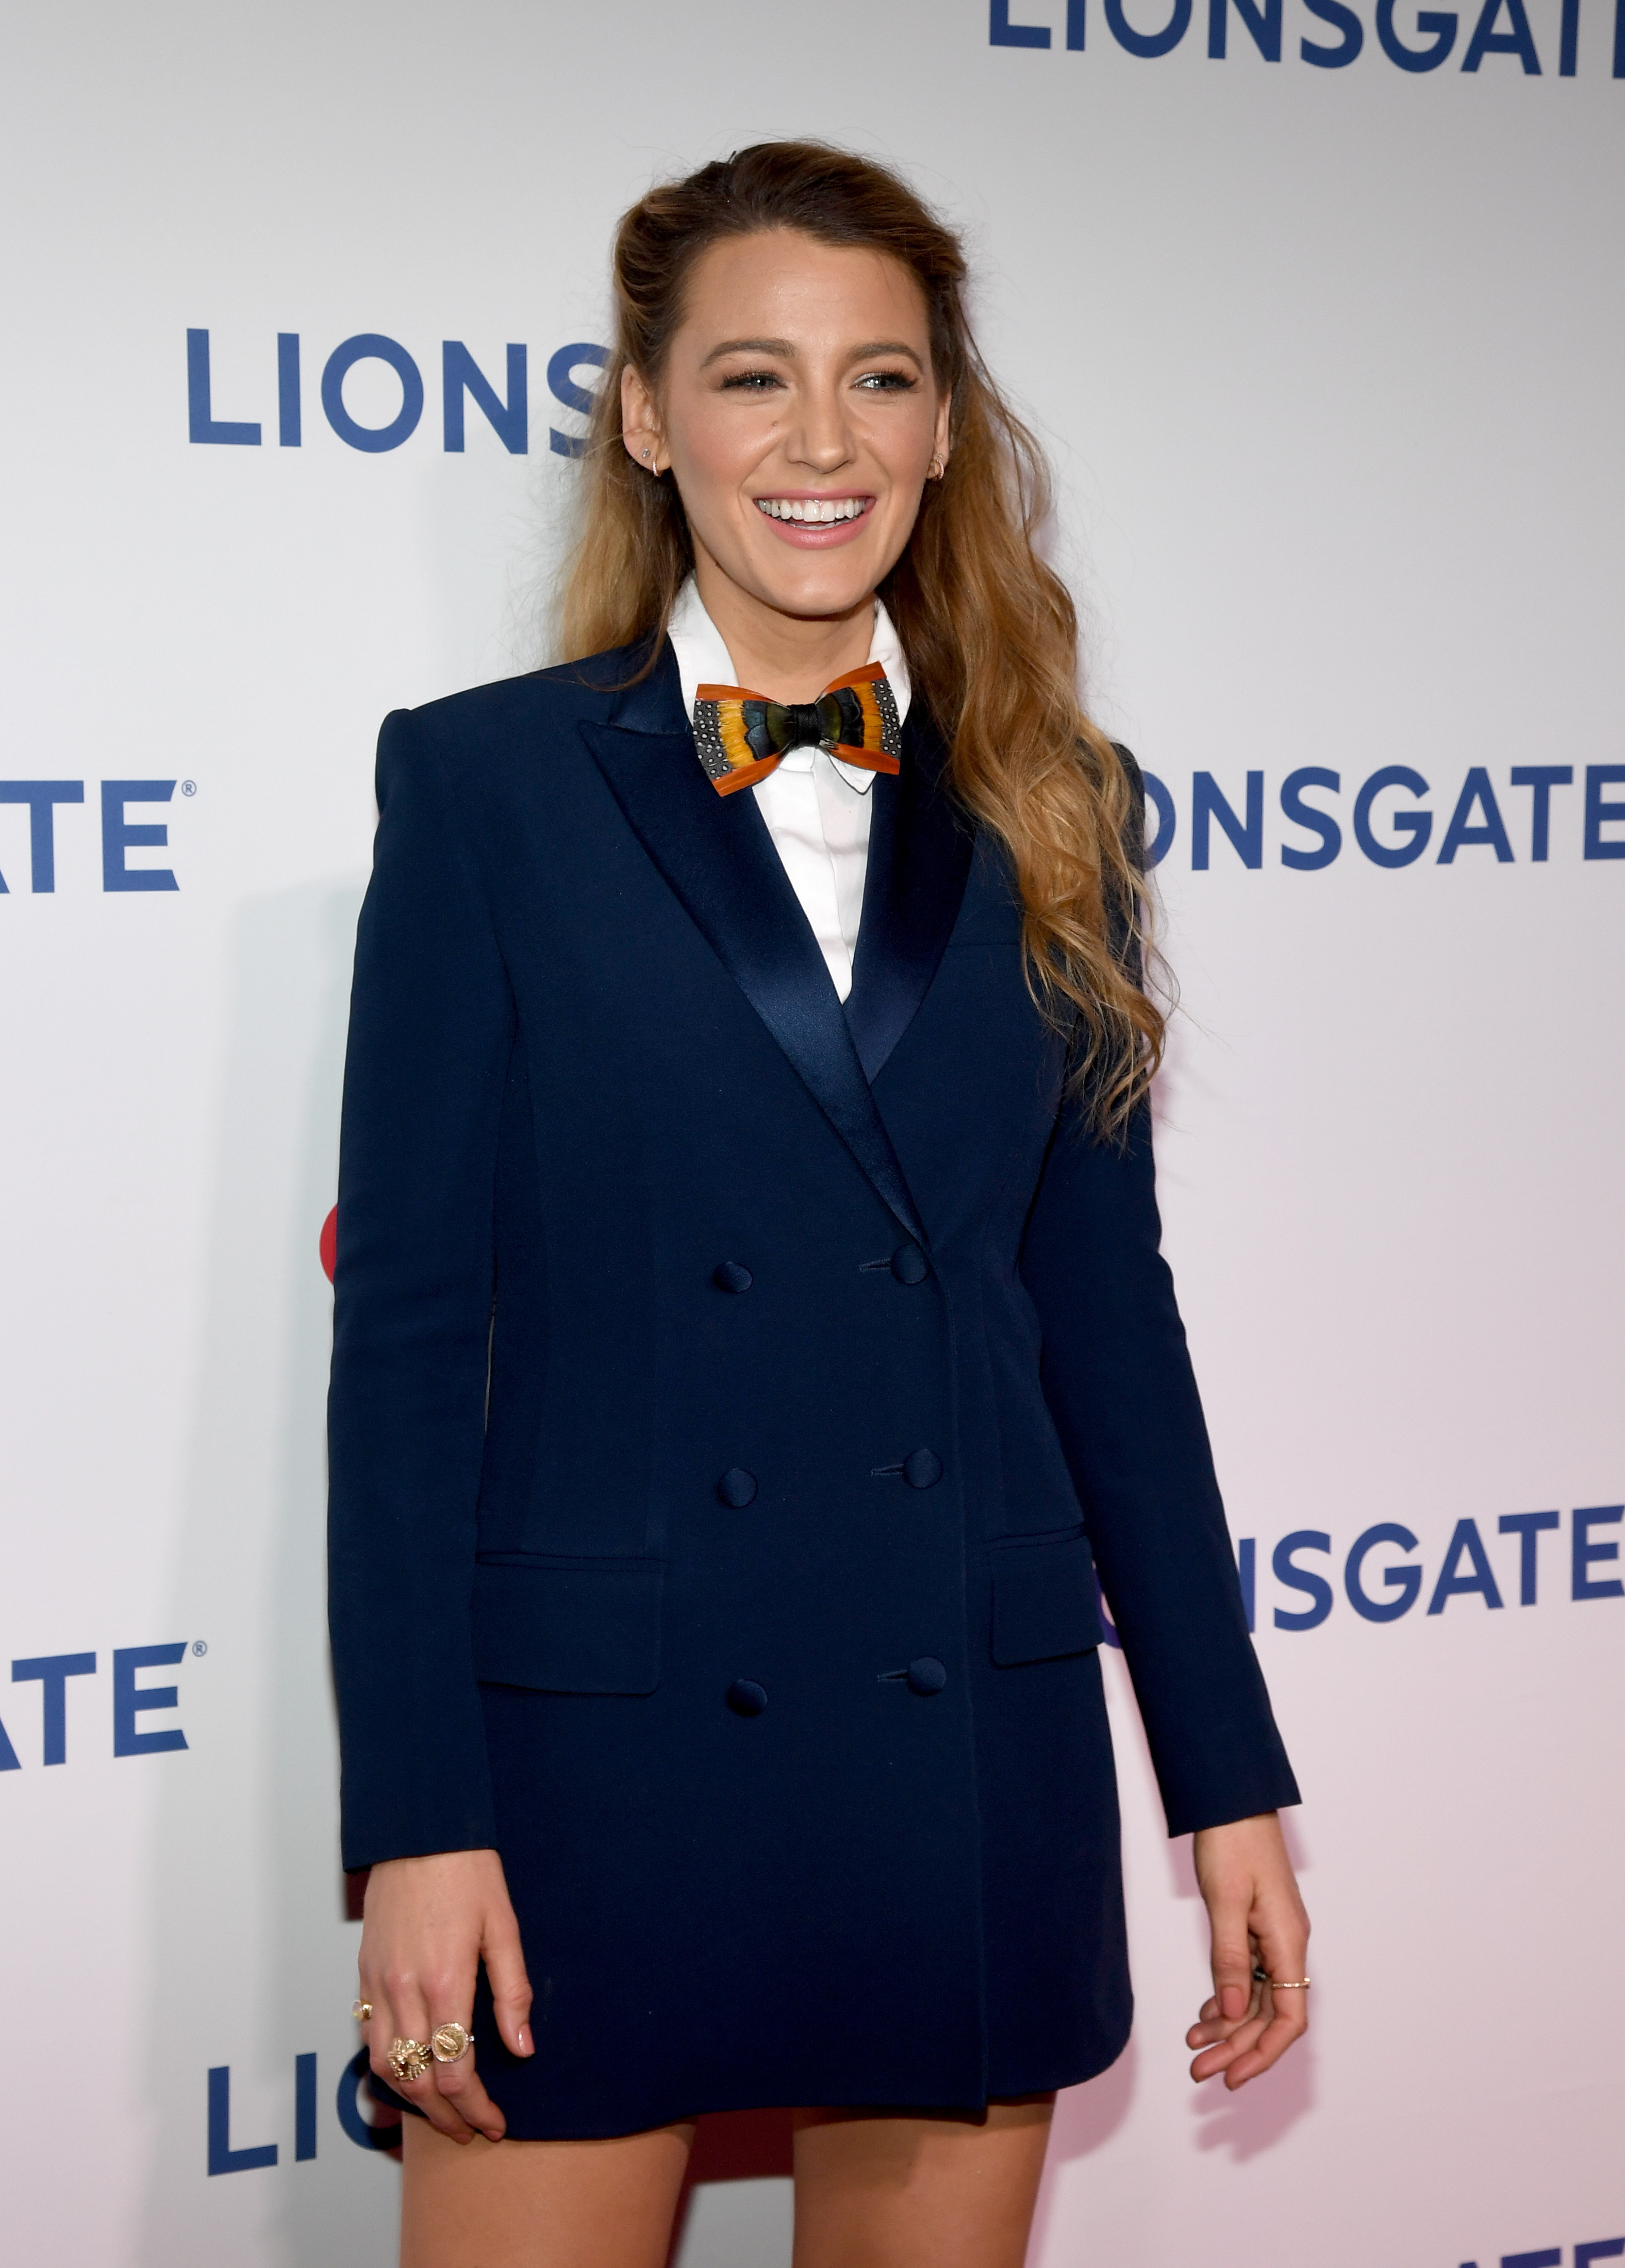 LAS VEGAS, NV - APRIL 26:  Actor Blake Lively attends CinemaCon 2018 Lionsgate Invites You to An Exclusive Presentation Highlighting Its 2018 Summer and Beyond at The Colosseum at Caesars Palace during CinemaCon, the official convention of the National Association of Theatre Owners, on April 26, 2018 in Las Vegas, Nevada.  (Photo by Ethan Miller/Getty Images for CinemaCon)